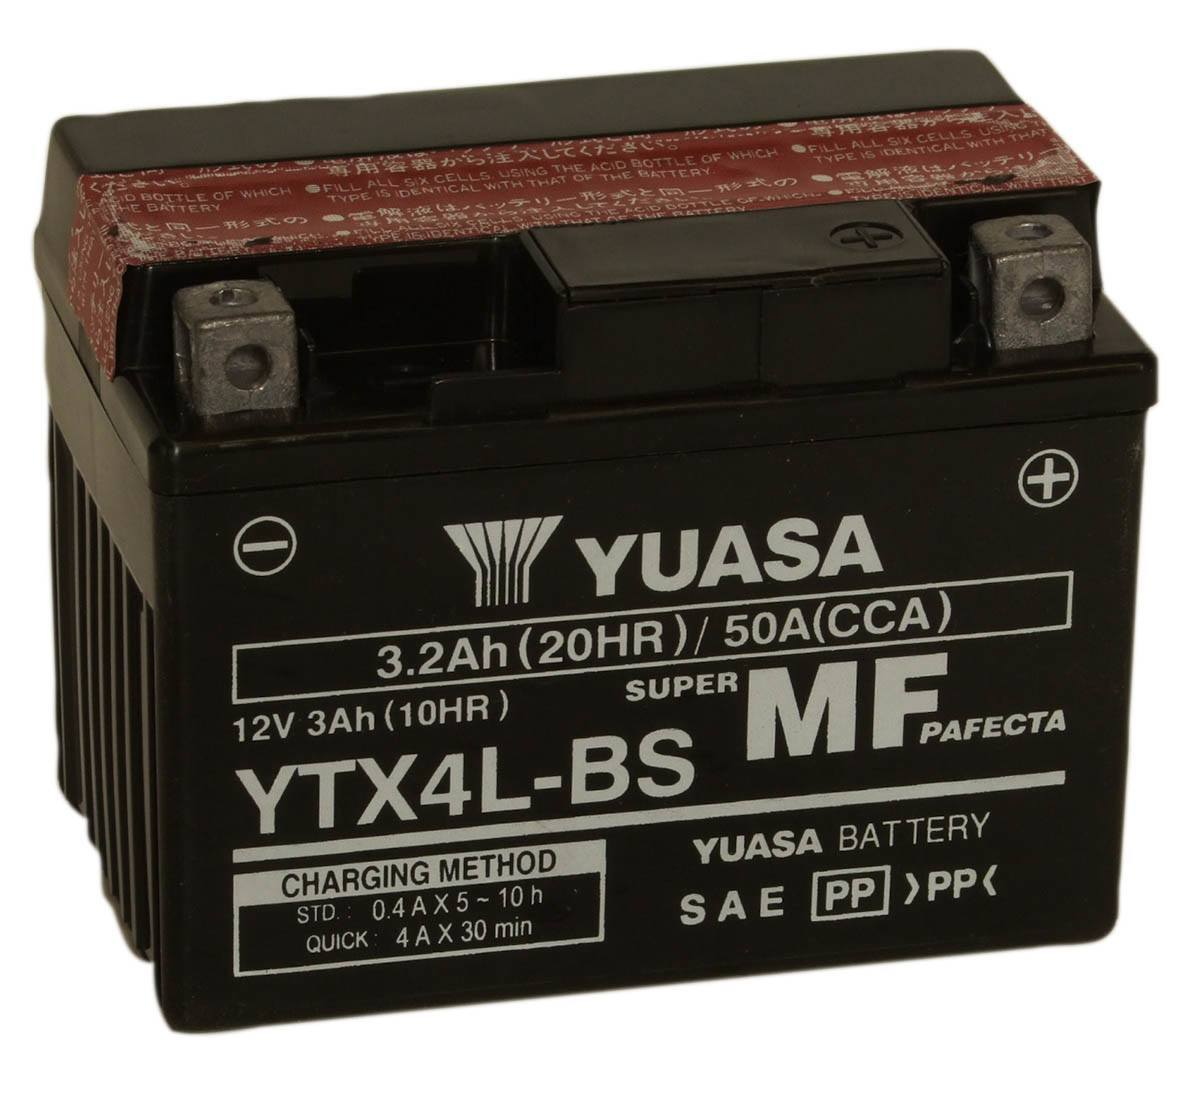 Get it delivered to your door - Yuasa YTX4L-BS (Taiwan) - 475 (EGP)